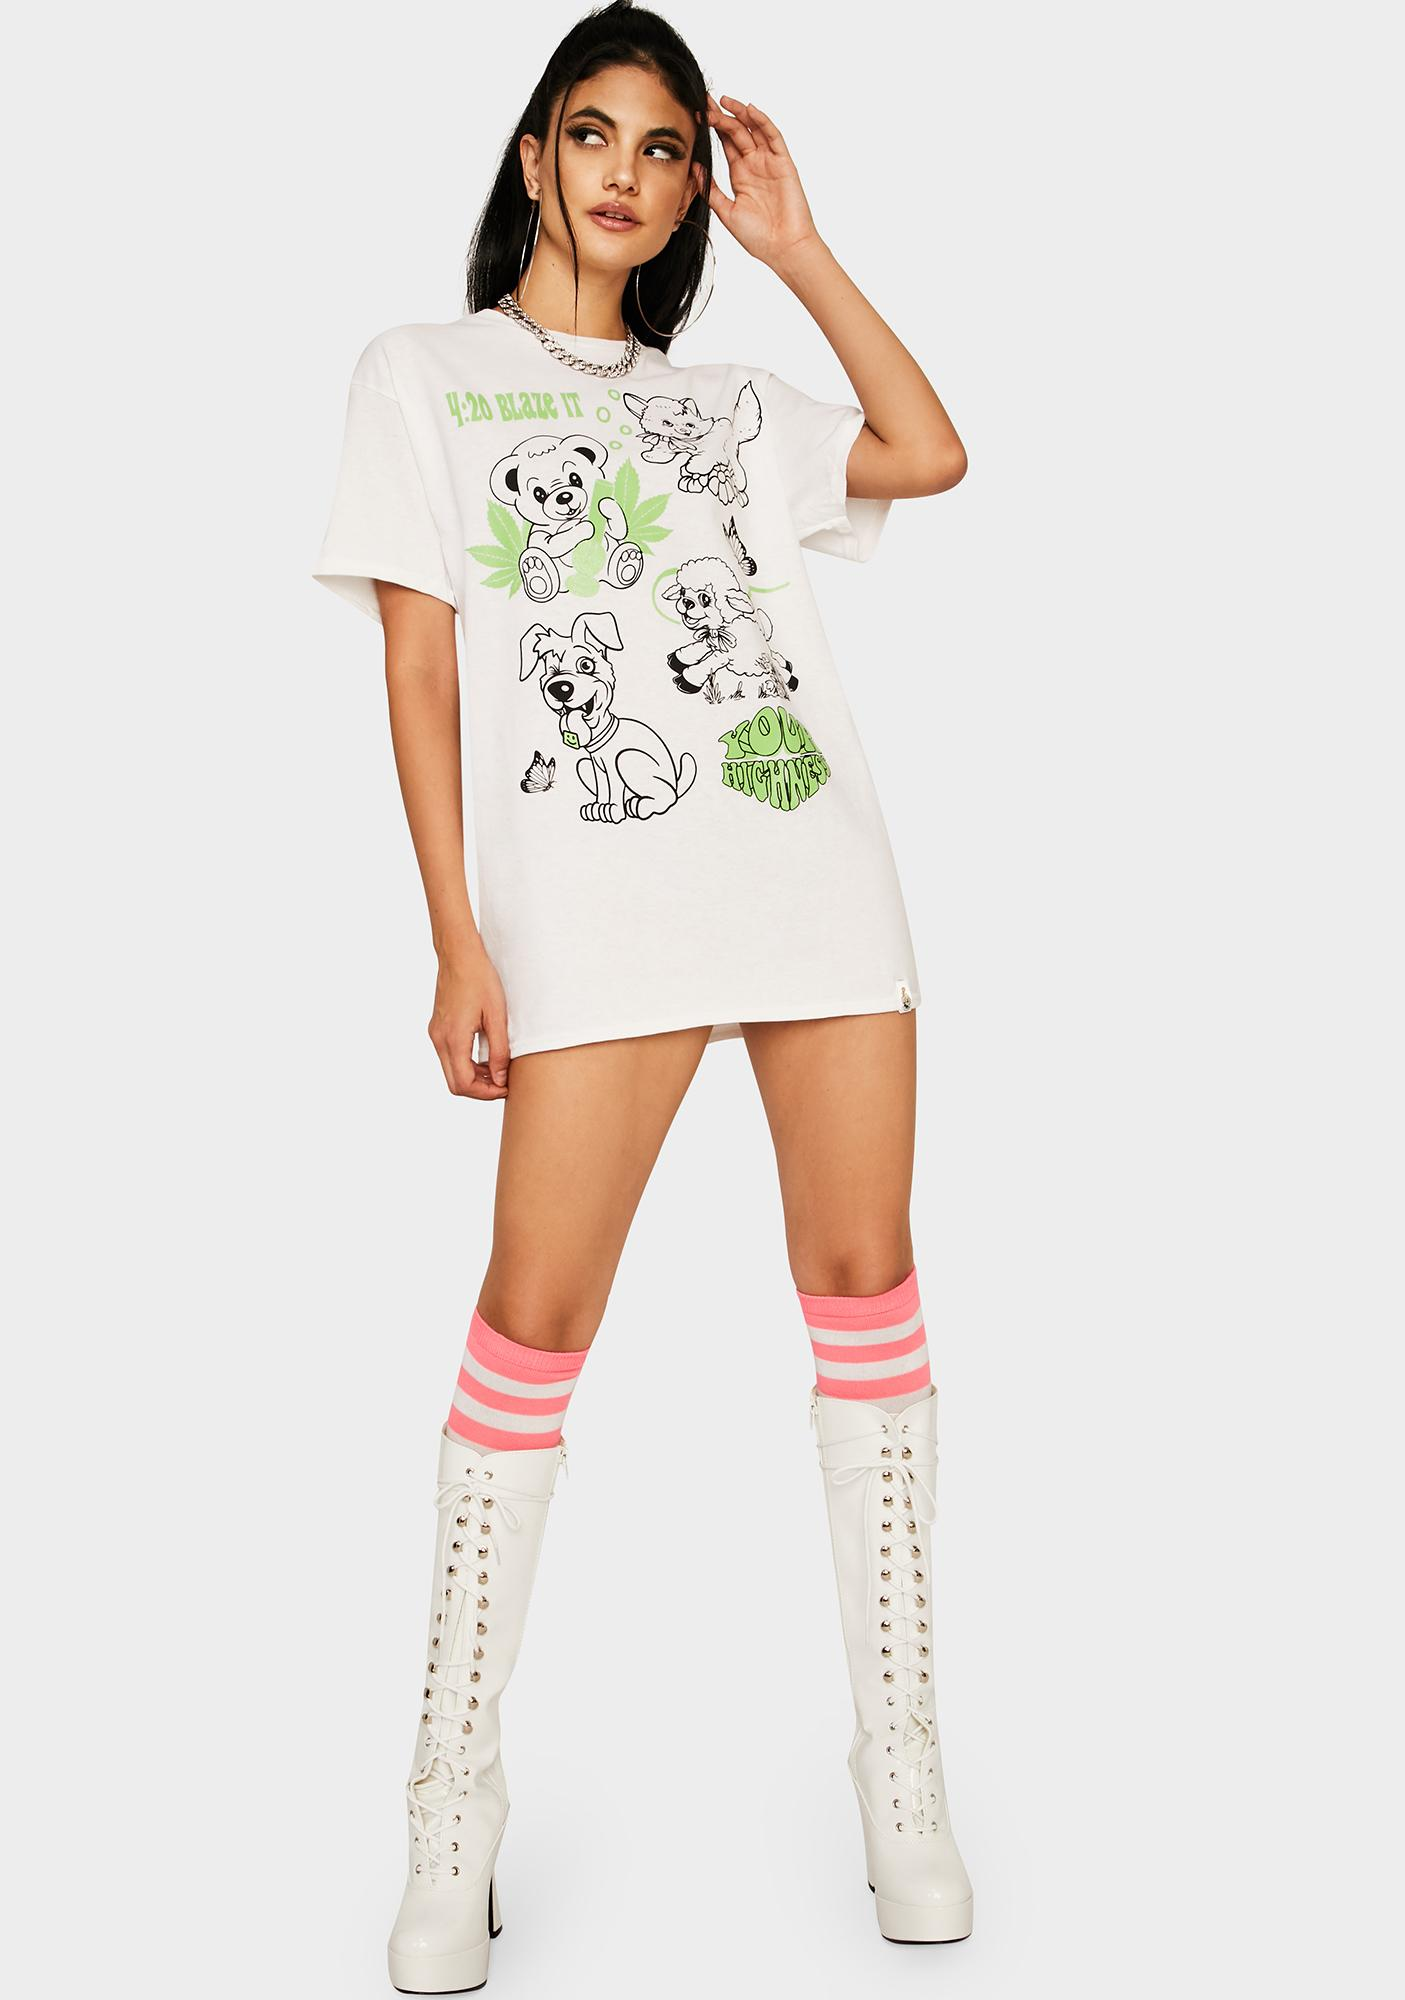 Your Highness Blaze It Glow In The Dark Graphic Tee